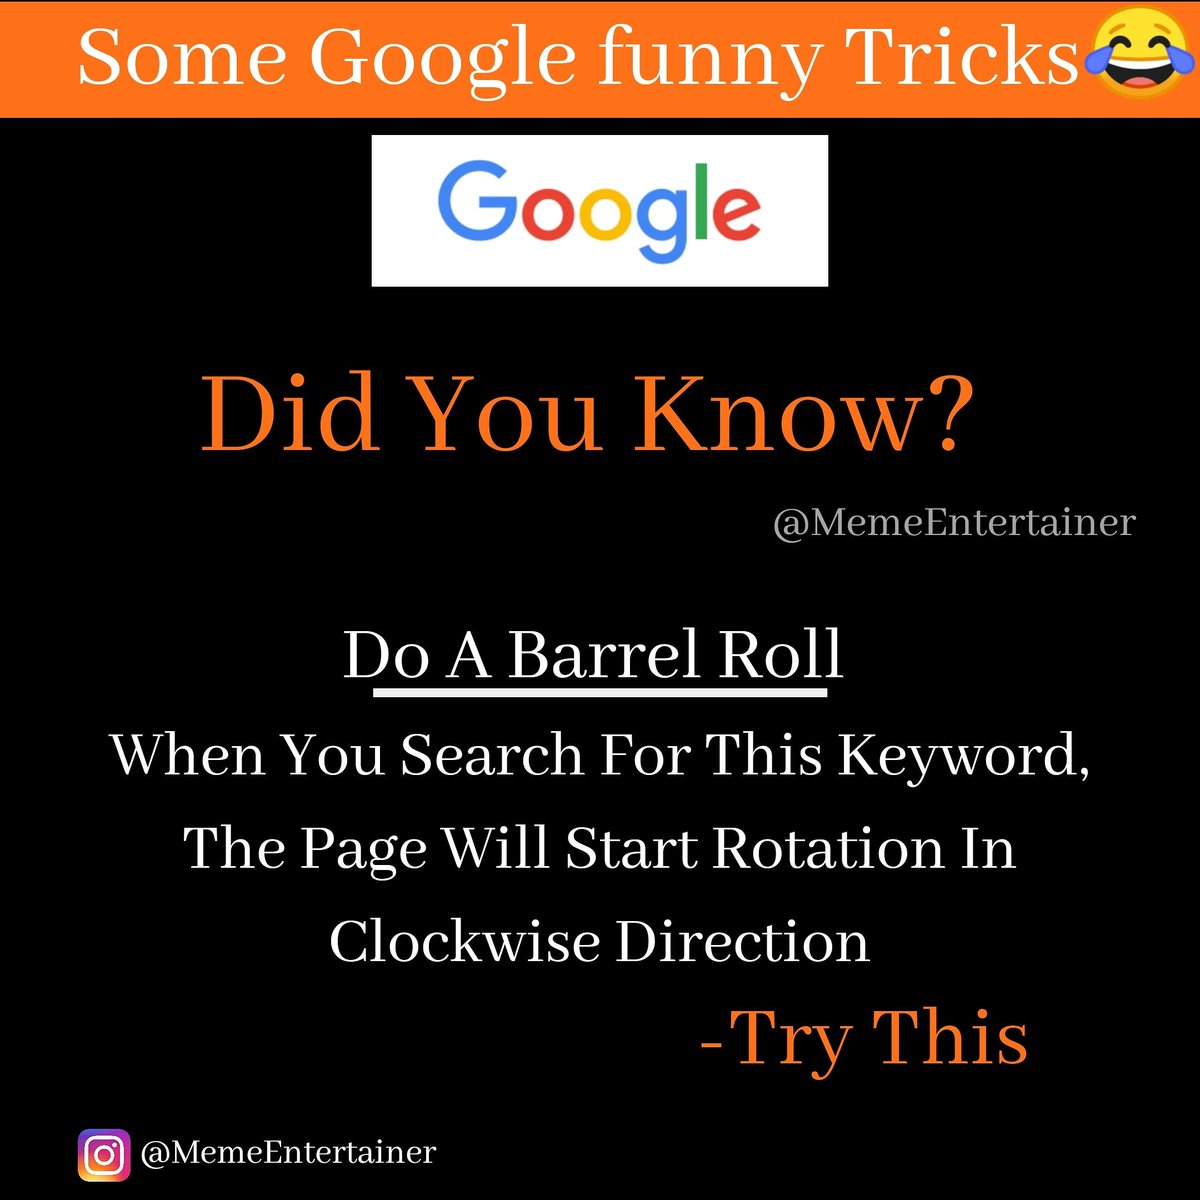 Try this!👈 If it's work Do Like❤& Follow for more👍 #googleplay #googlepixel #googlemaps #agoogleaday #agoogle #googlebusiness #googledrive #googledevelopers #googledocs #googleduo #googleexpress #googleedu #googleexpeditions #rvcjinsta #rvcjmedia Follow if you like ❤